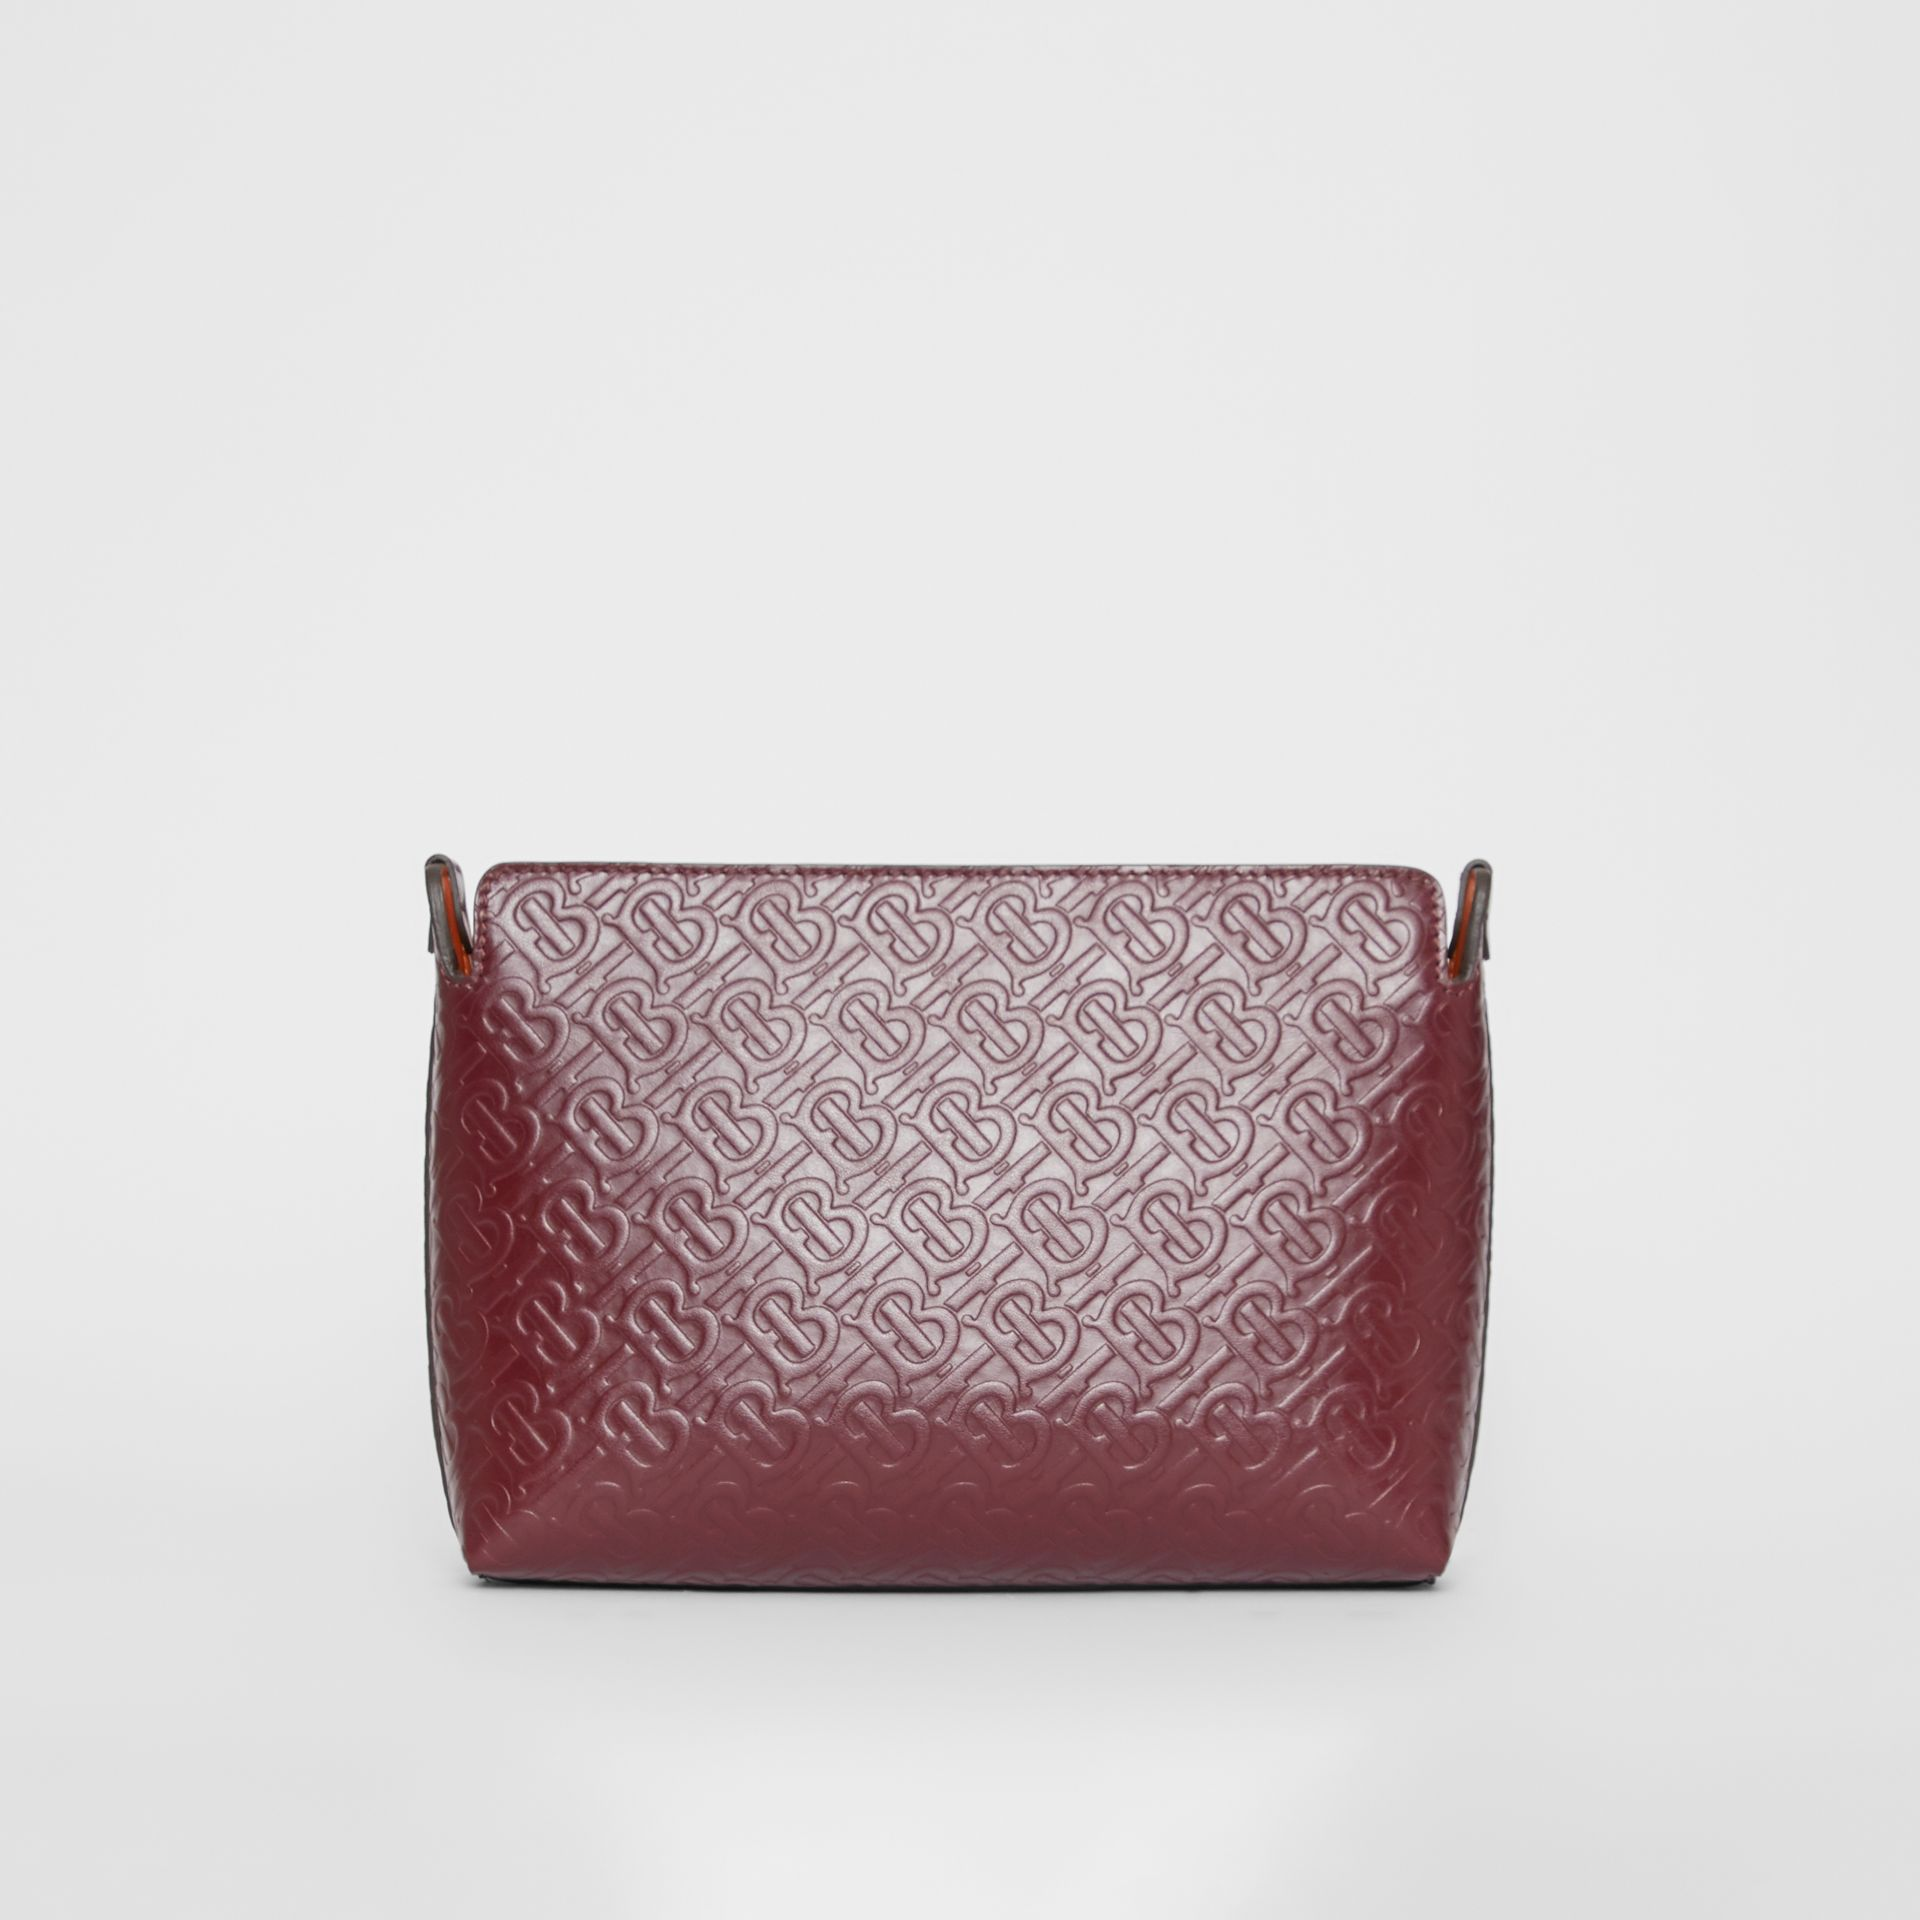 Medium Monogram Leather Clutch in Oxblood - Women | Burberry United Kingdom - gallery image 0